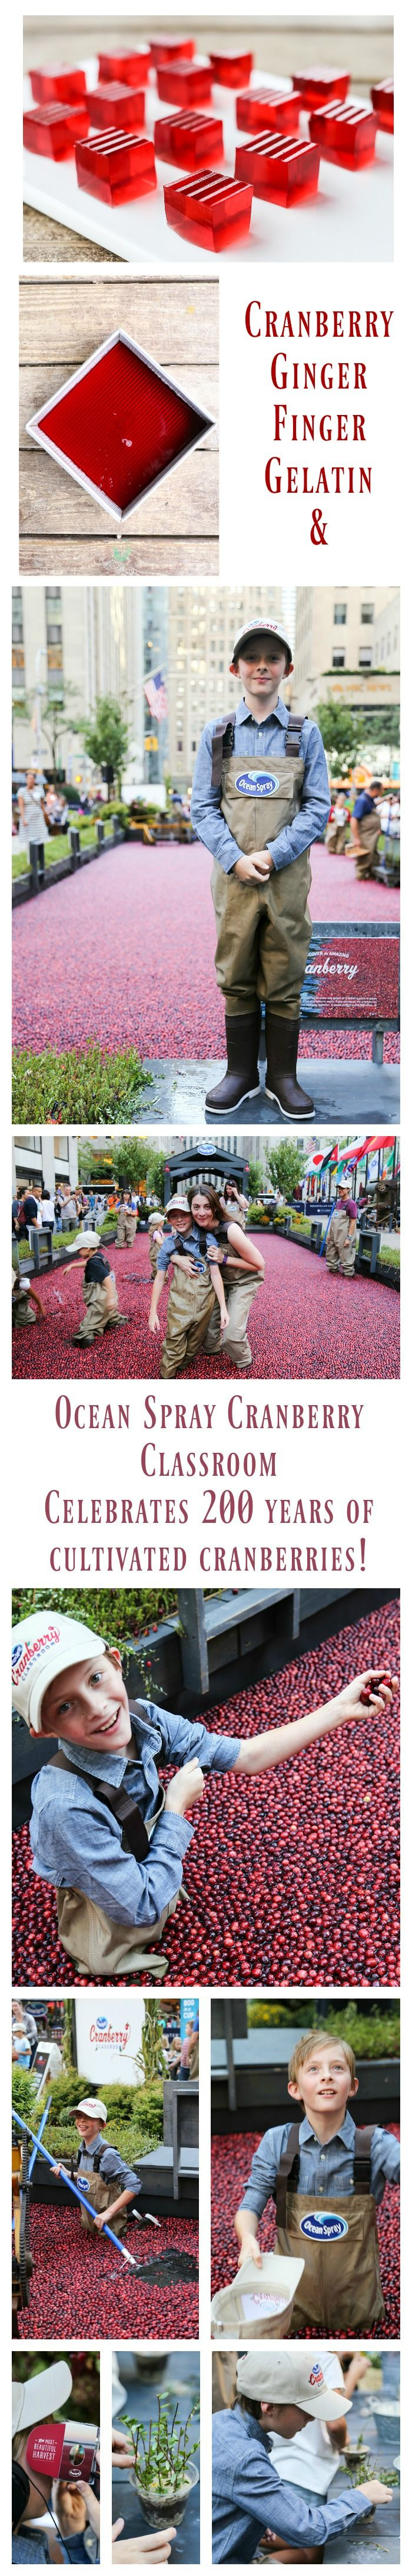 Cranberry Ginger Finger Gelatin and celebrating 200 years of cranberry cultivation with Ocean Spray® and the #Cranberryclassroom #ad